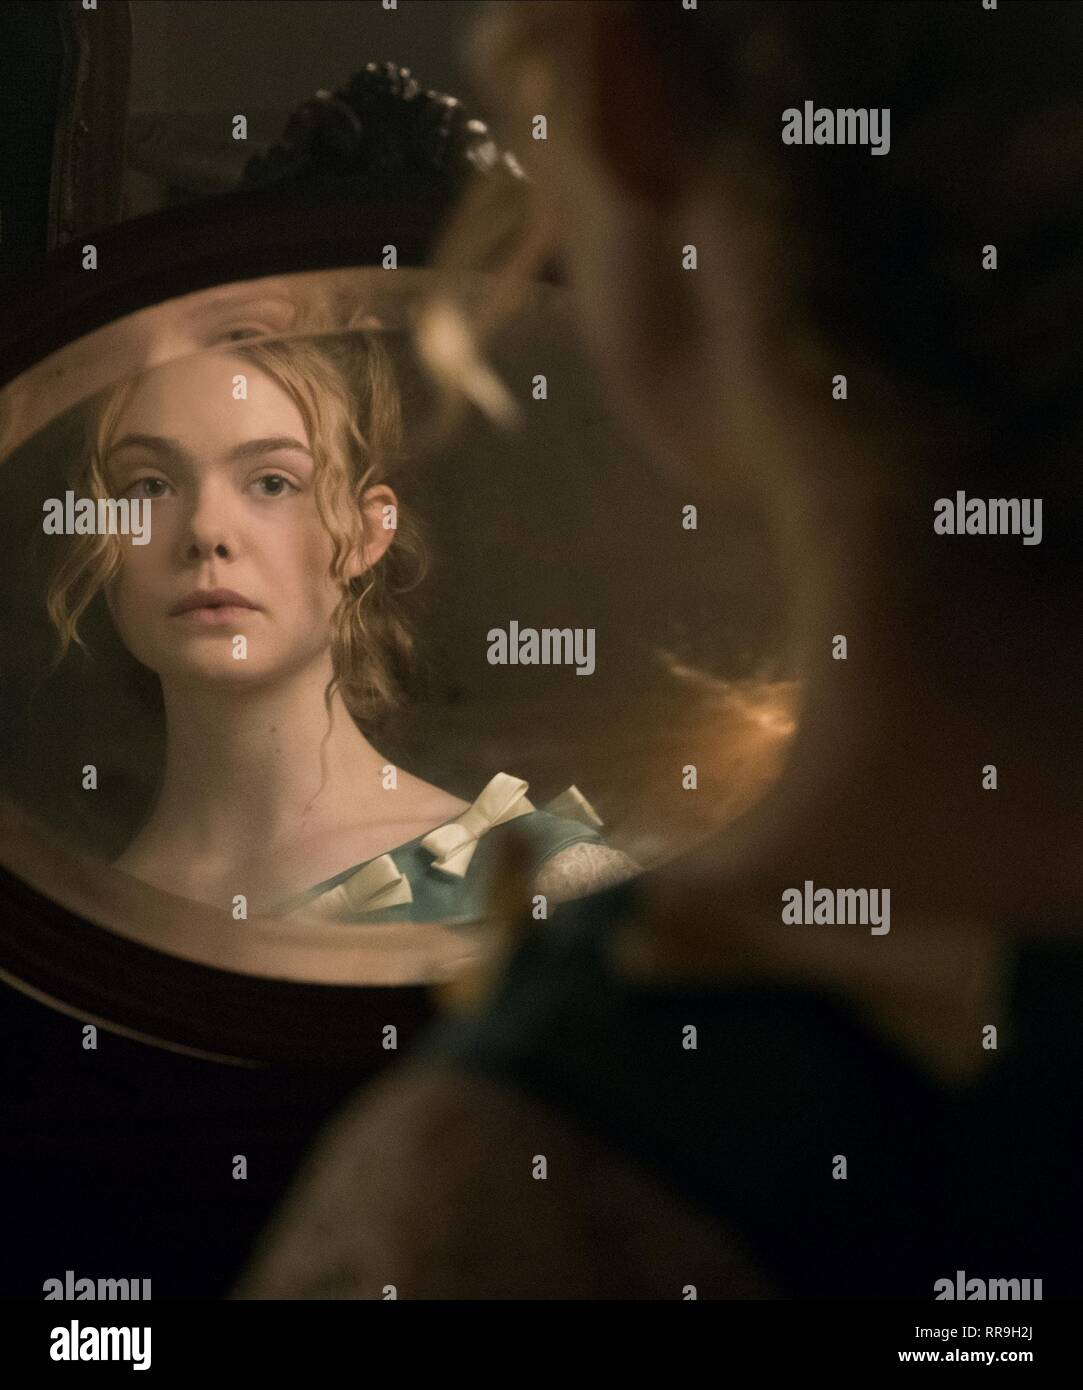 THE BEGUILED, ELLE FANNING, 2017 - Stock Image